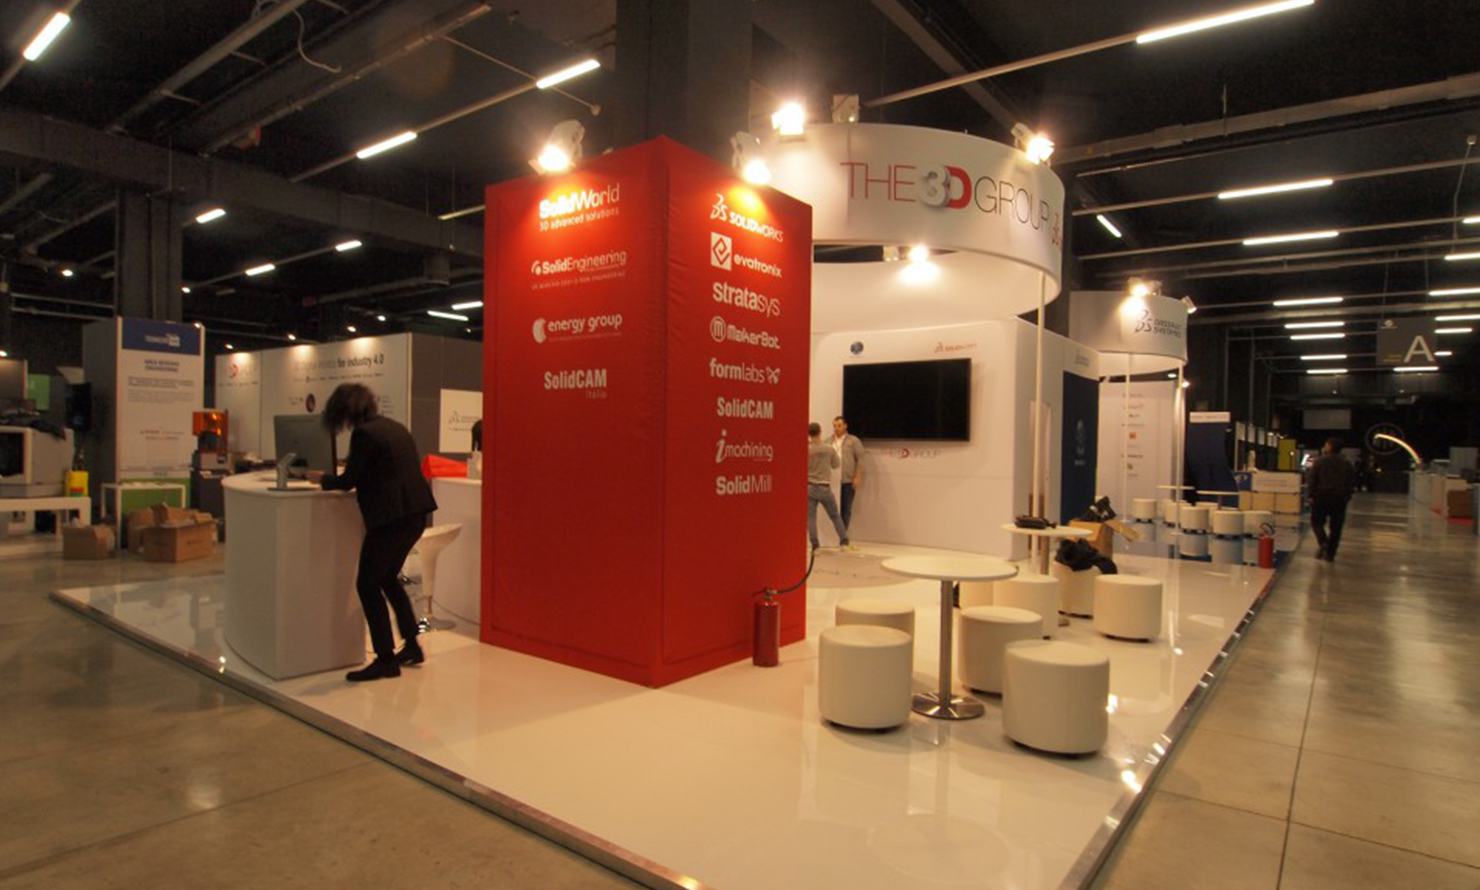 https://www.kubelibre.com/uploads/Slider-work-tutti-clienti/the3dwork-solid-world-exhibition-2.jpg